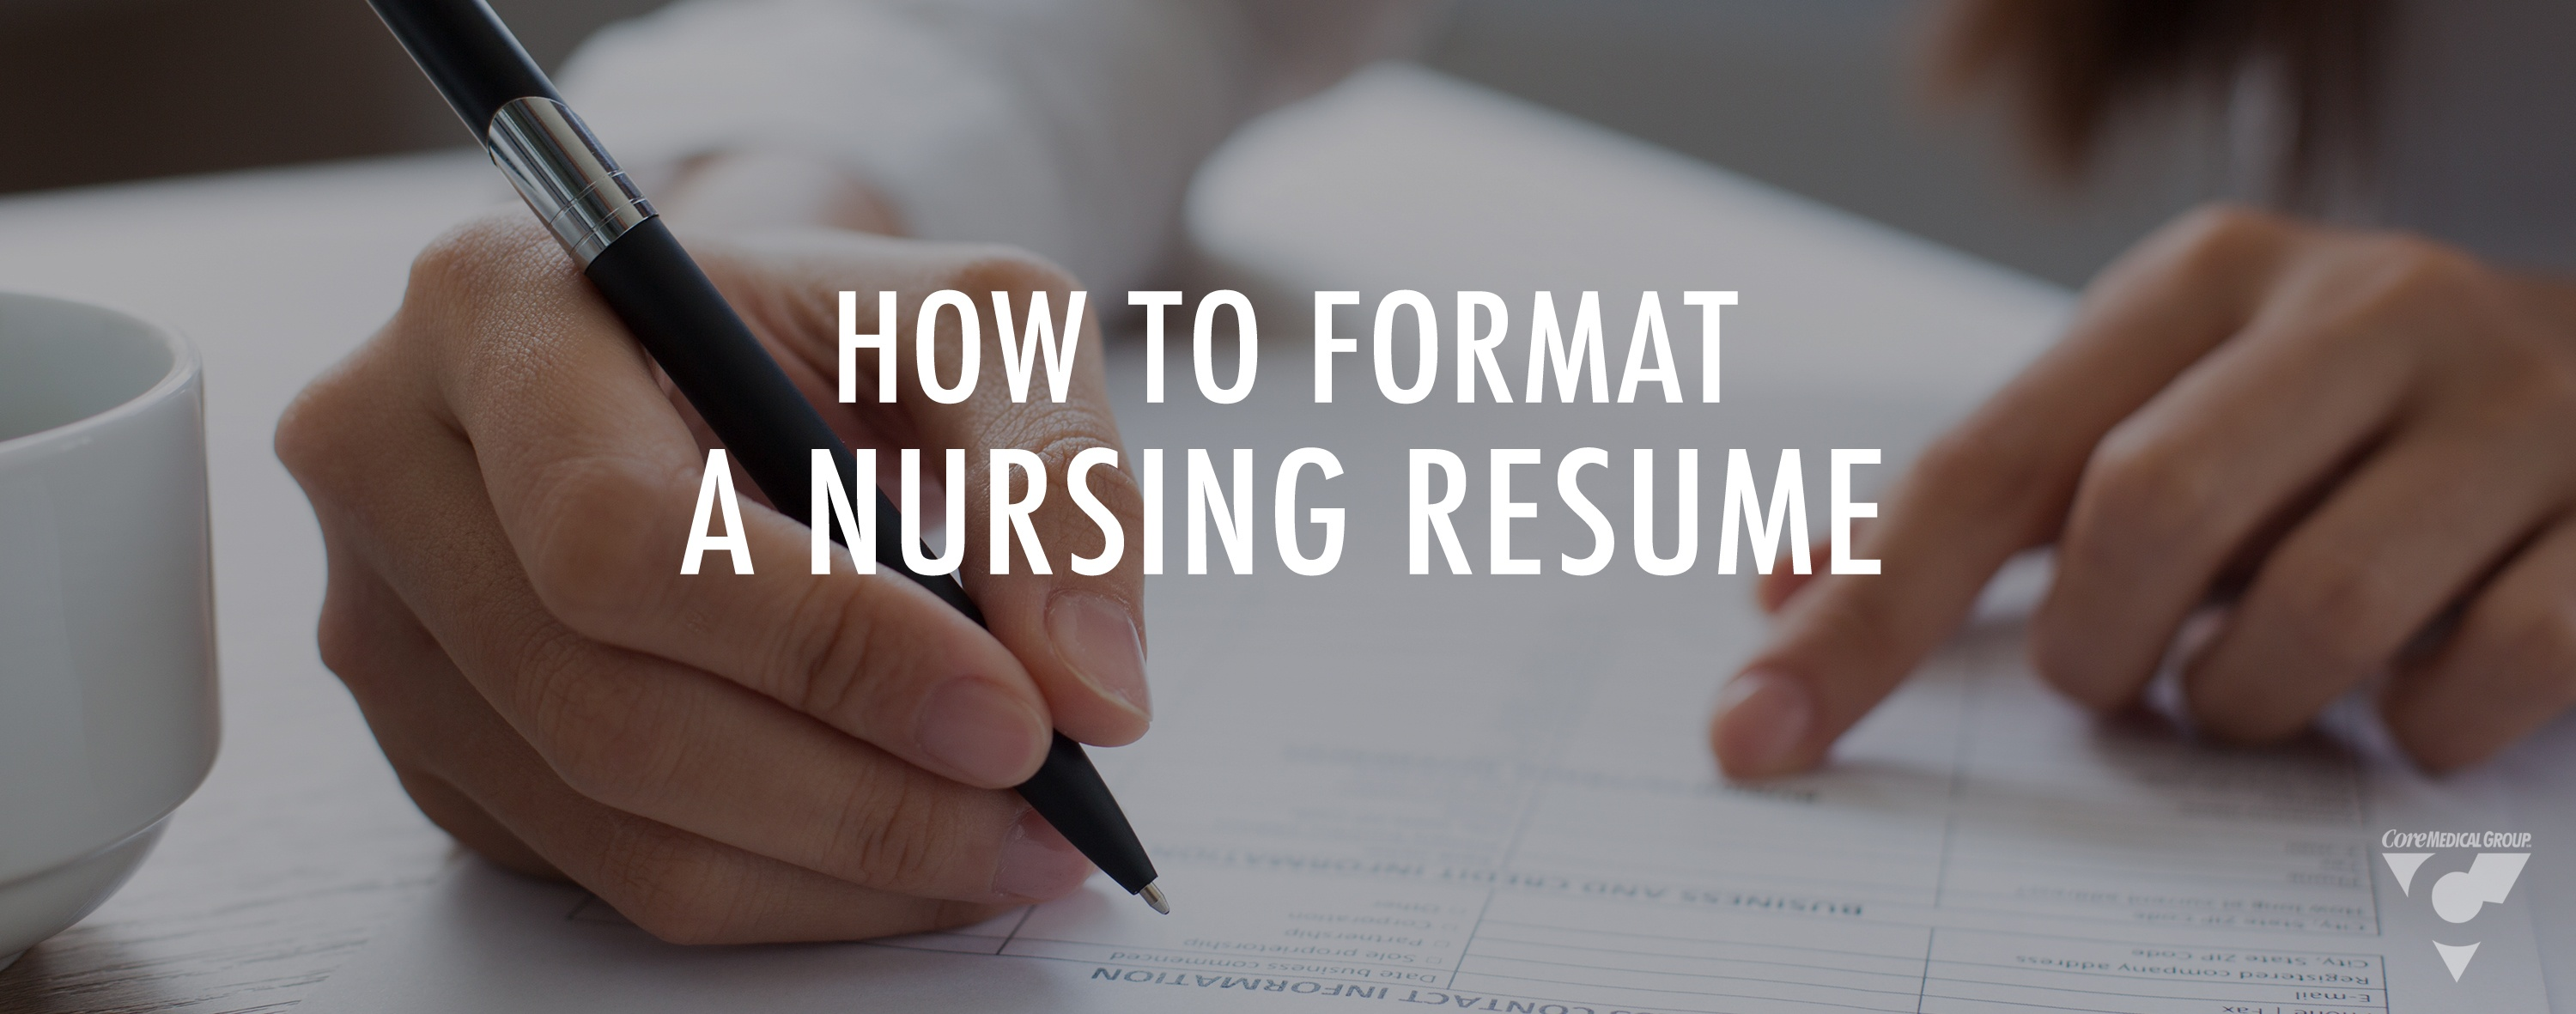 CMG_Blog_FeaturedImages_04.18_How_to_Format_a_Nursing_Resume_Blog_R1